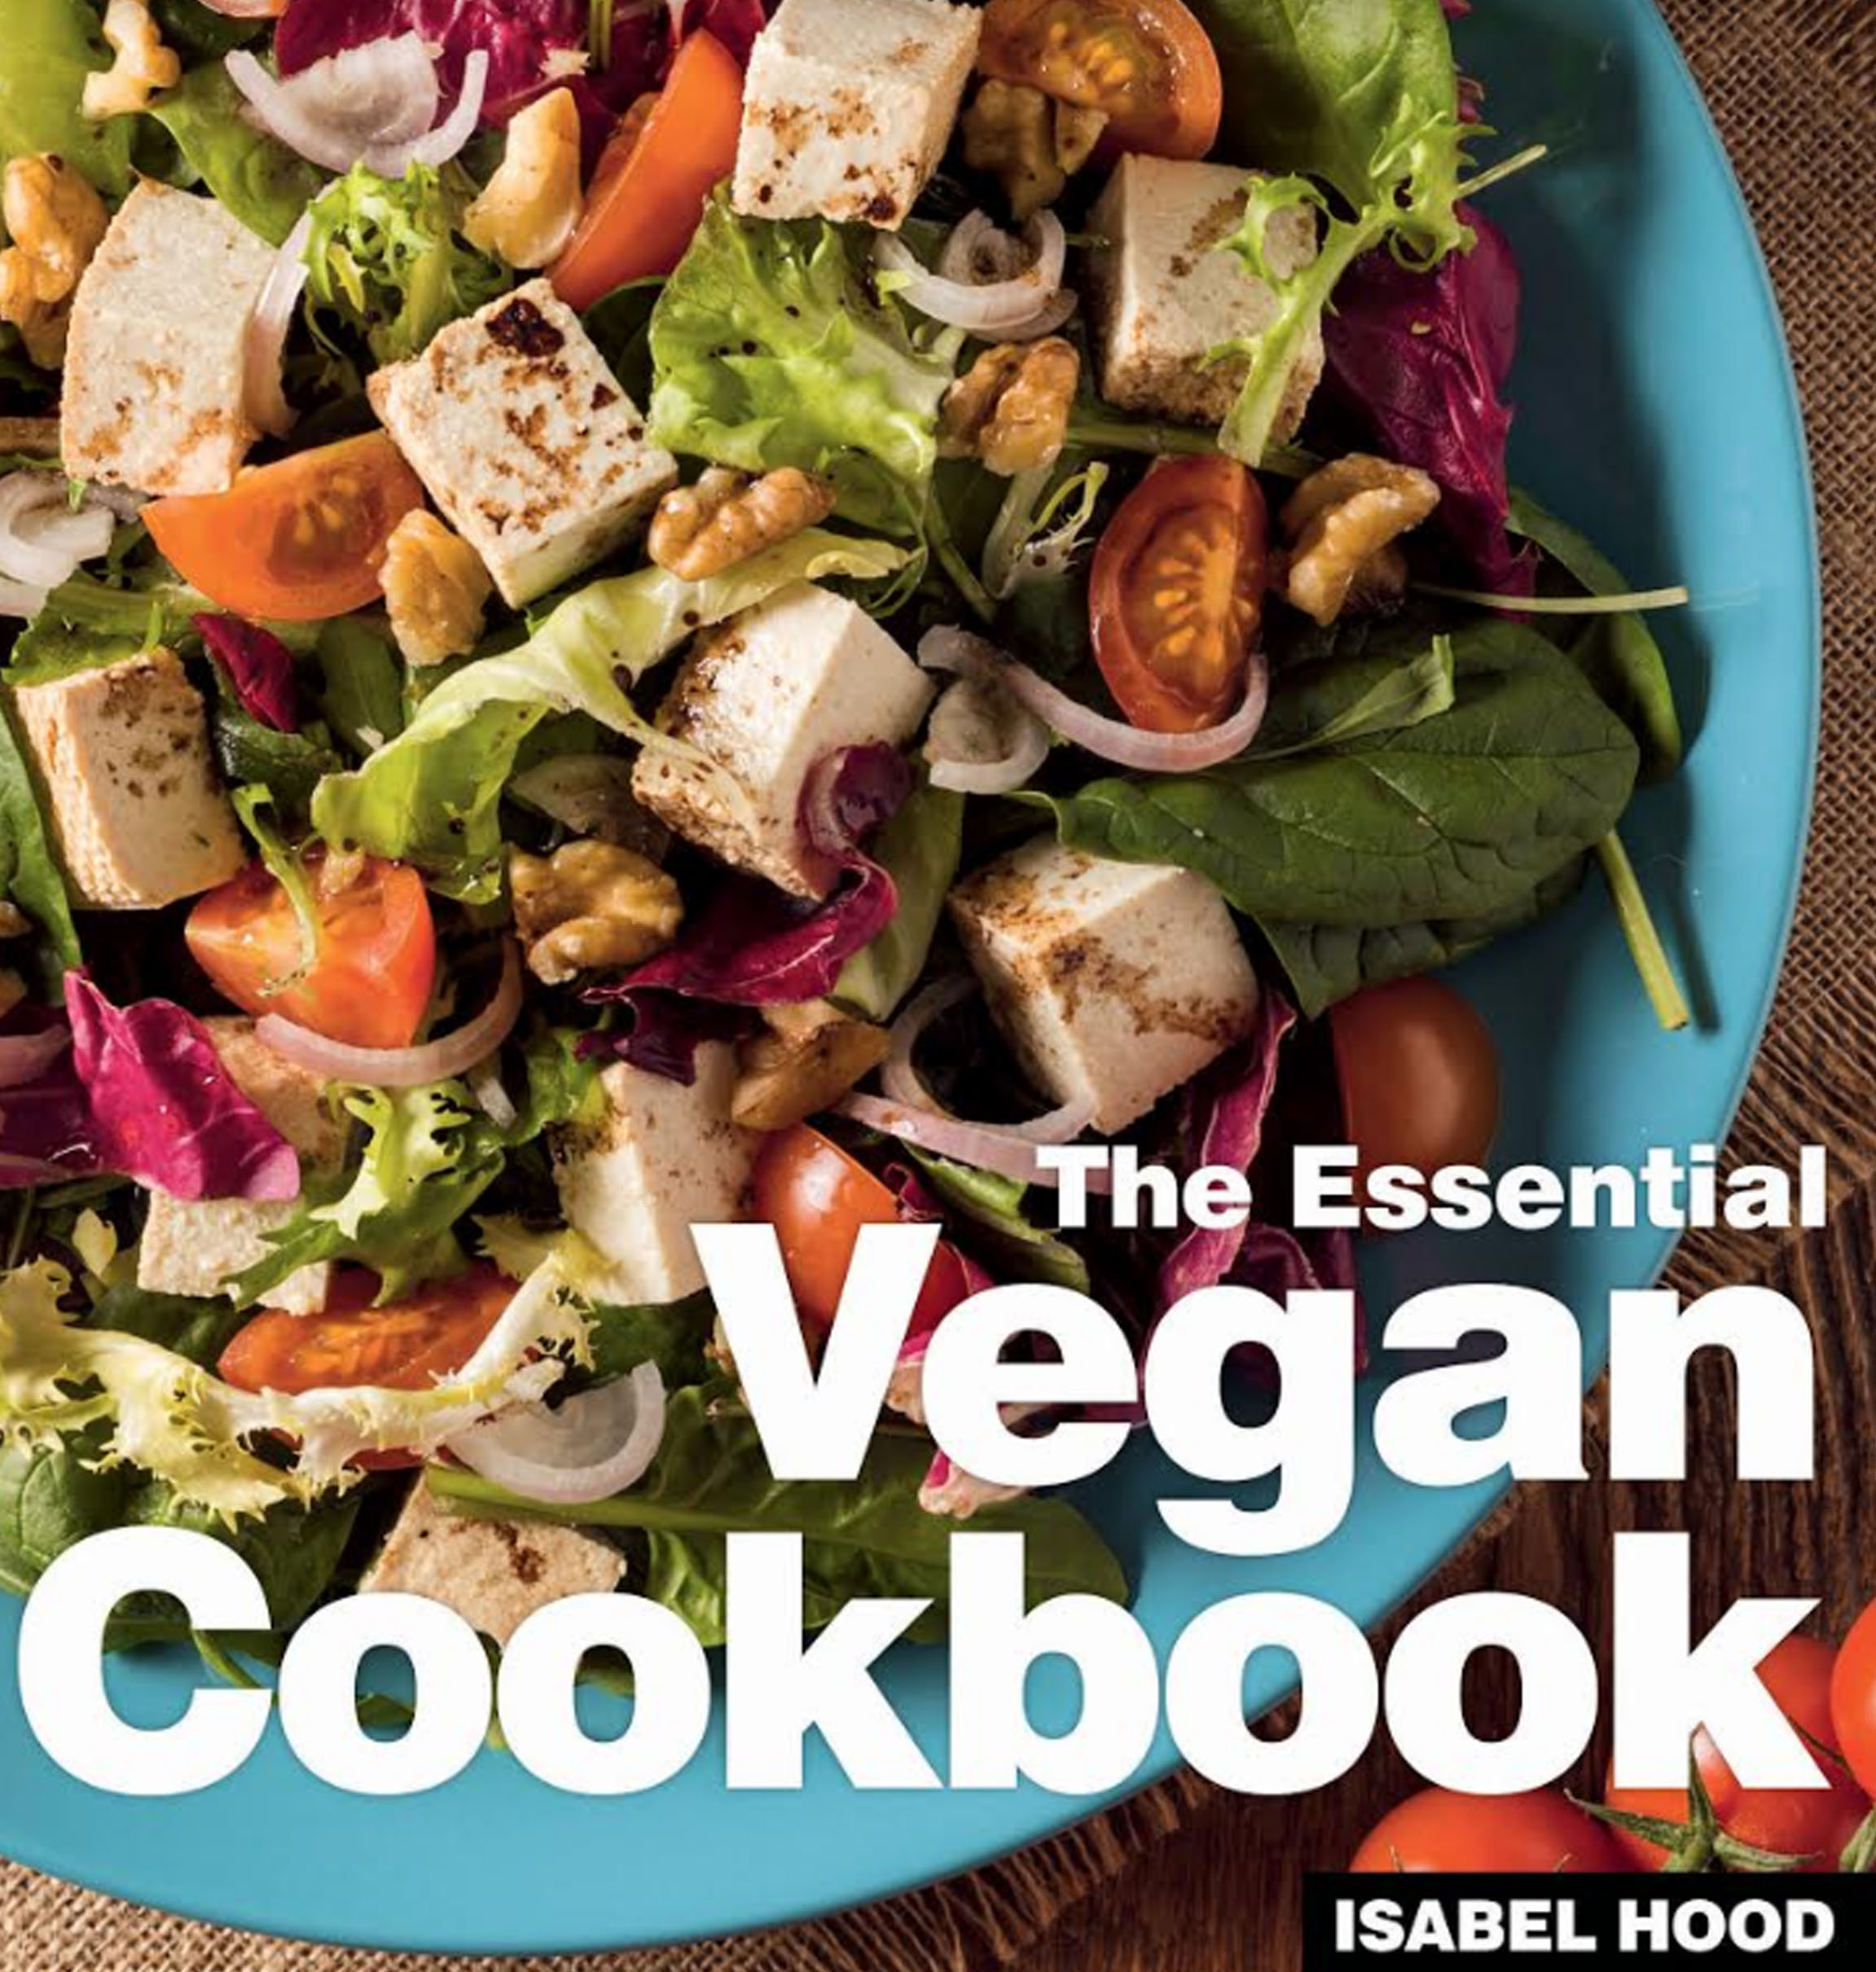 The Essential Vegan Cookbook